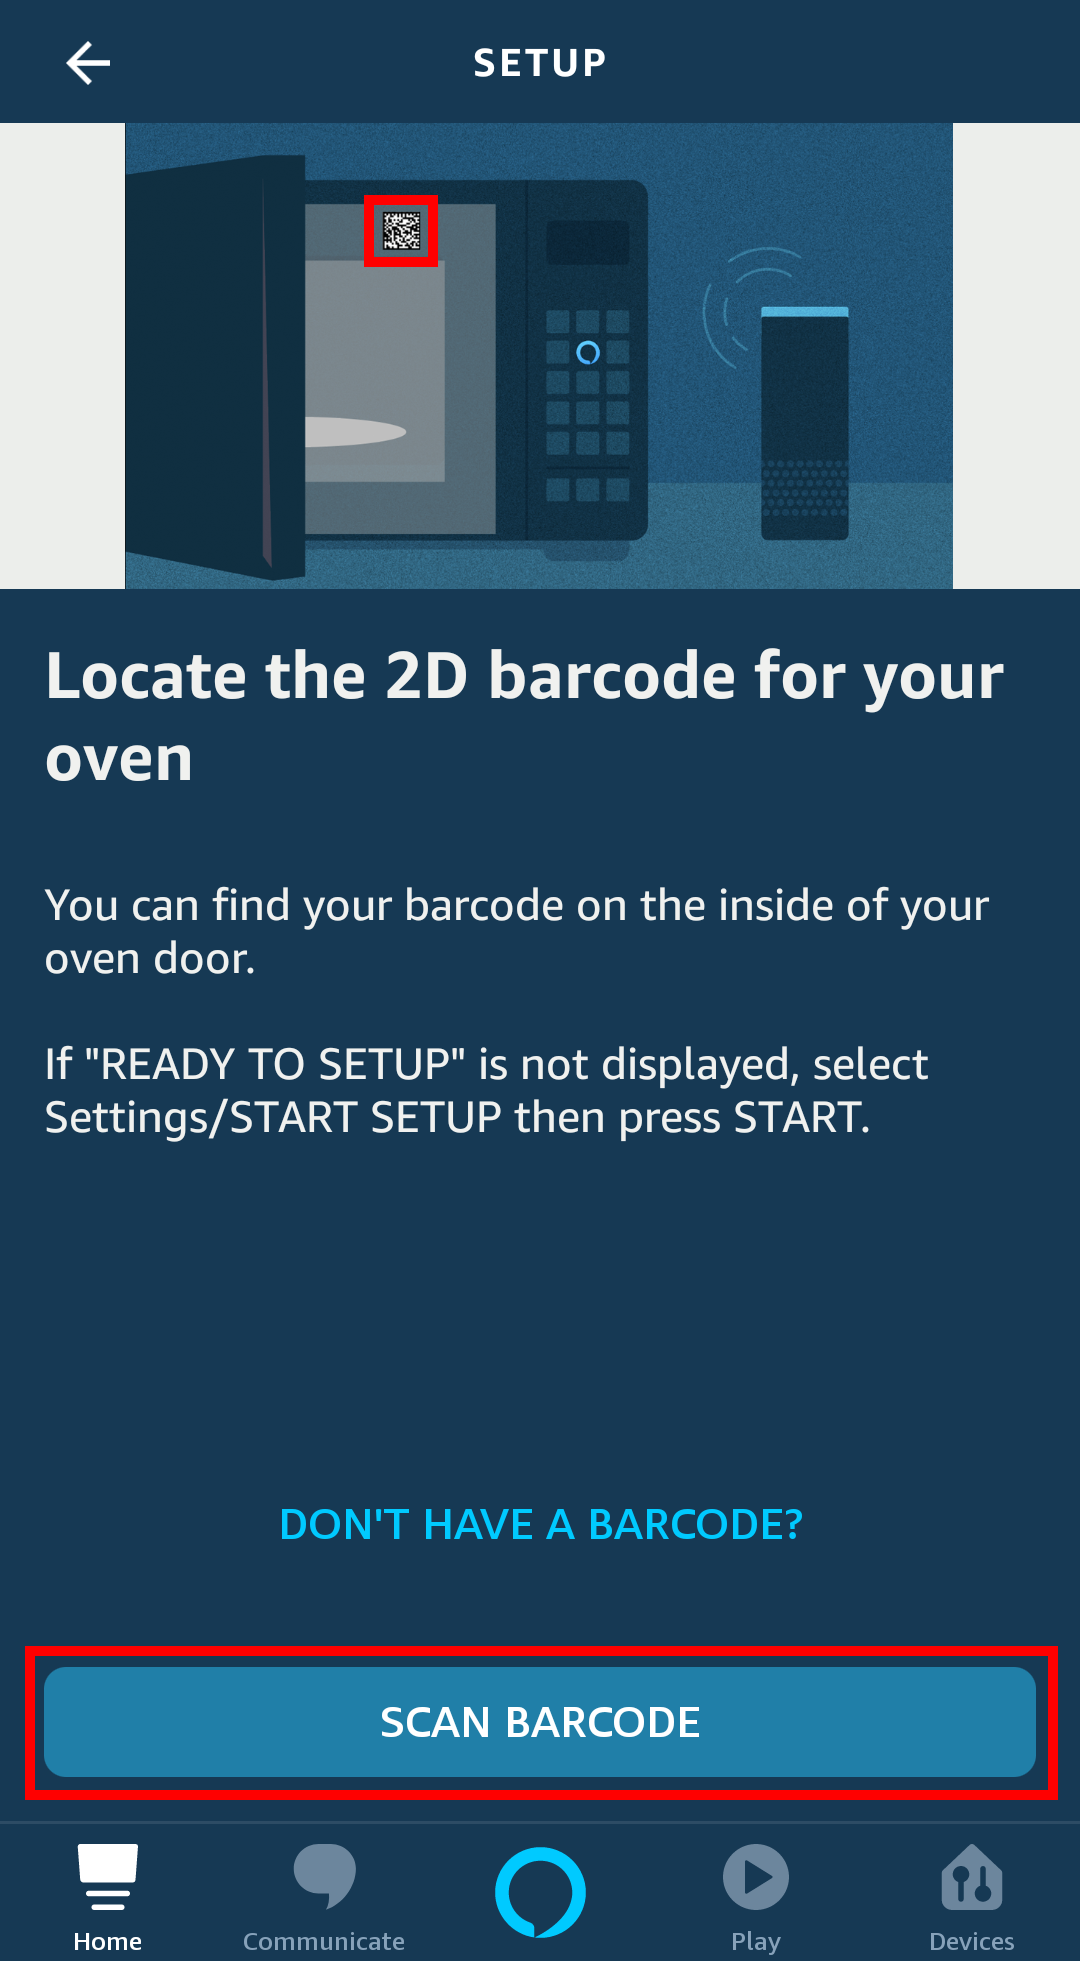 Screensot of the Amazon Alexa app. The screen is showing the 2d barcode scanning process to follow to add an Amazon Smart Oven to the Alexa app.